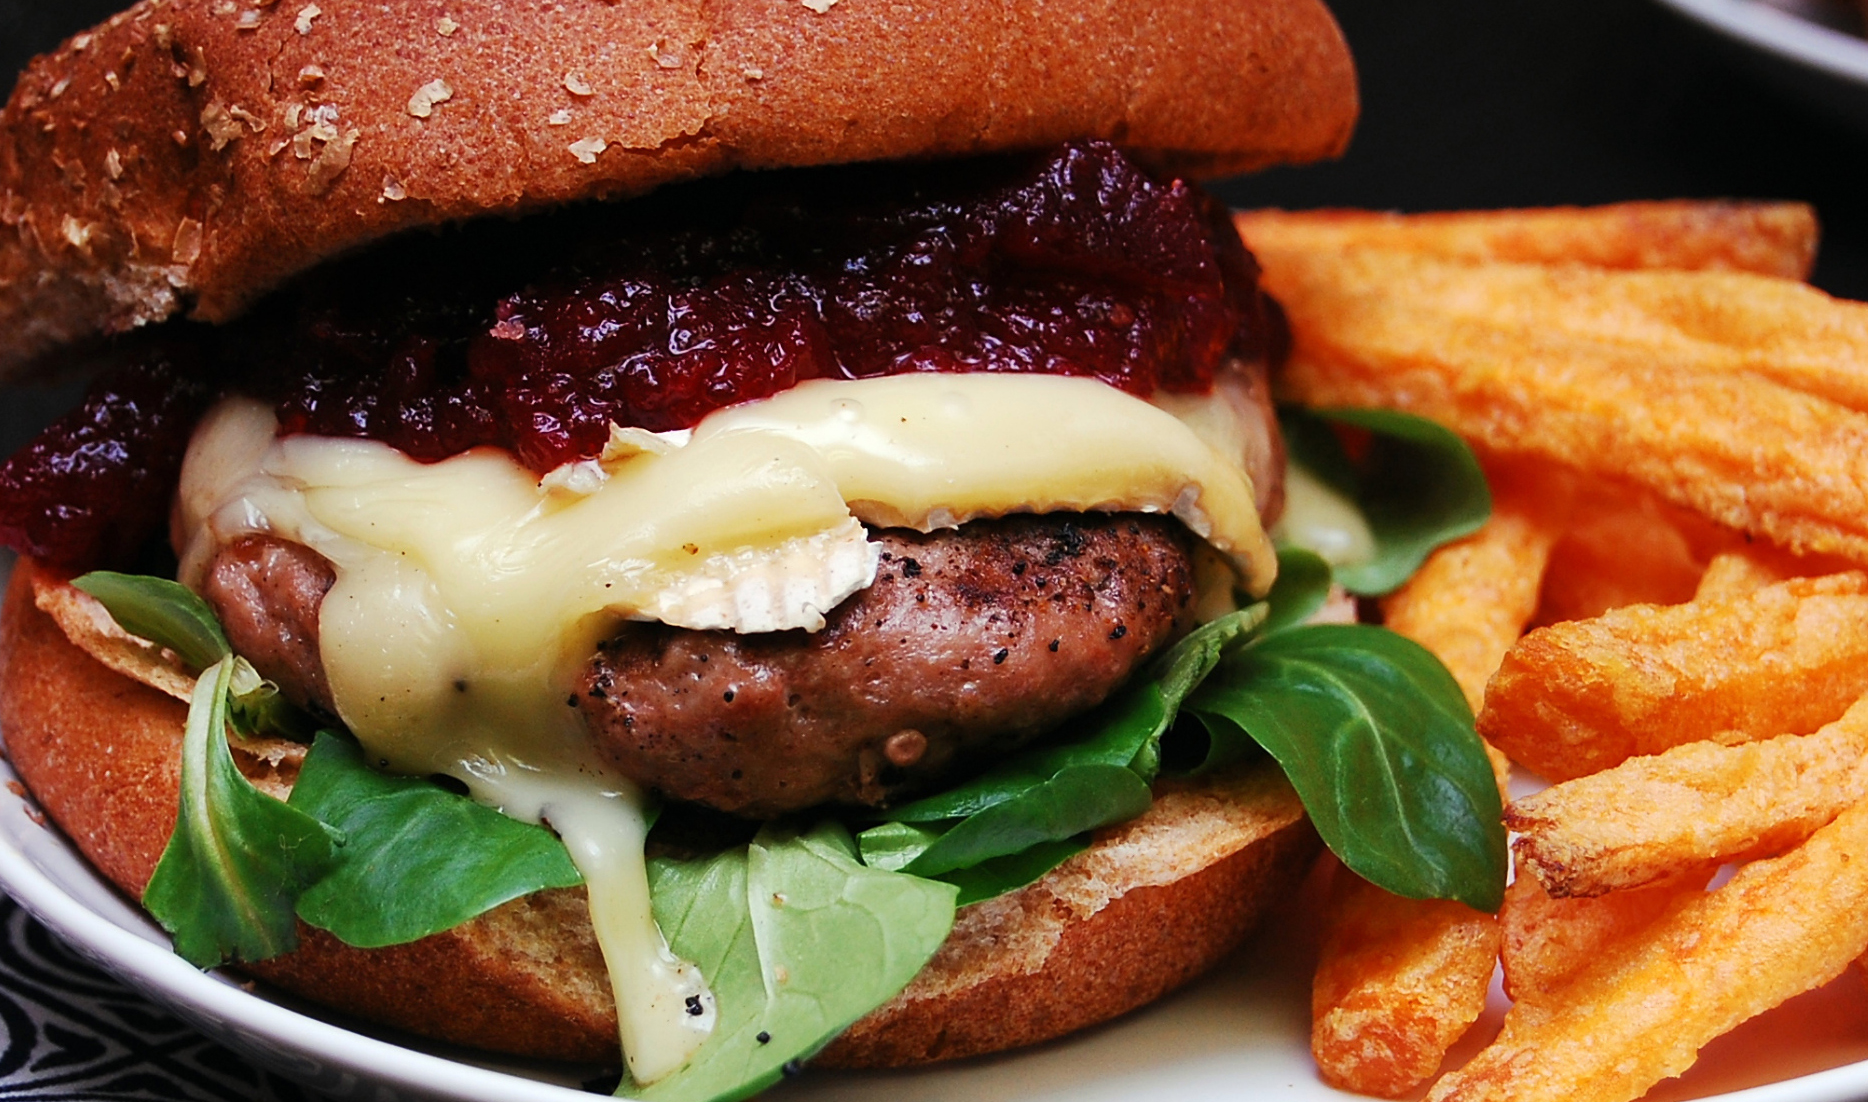 Infused Recipes: Brie & Cranberry Turkey Burger with Fresh Rosemary